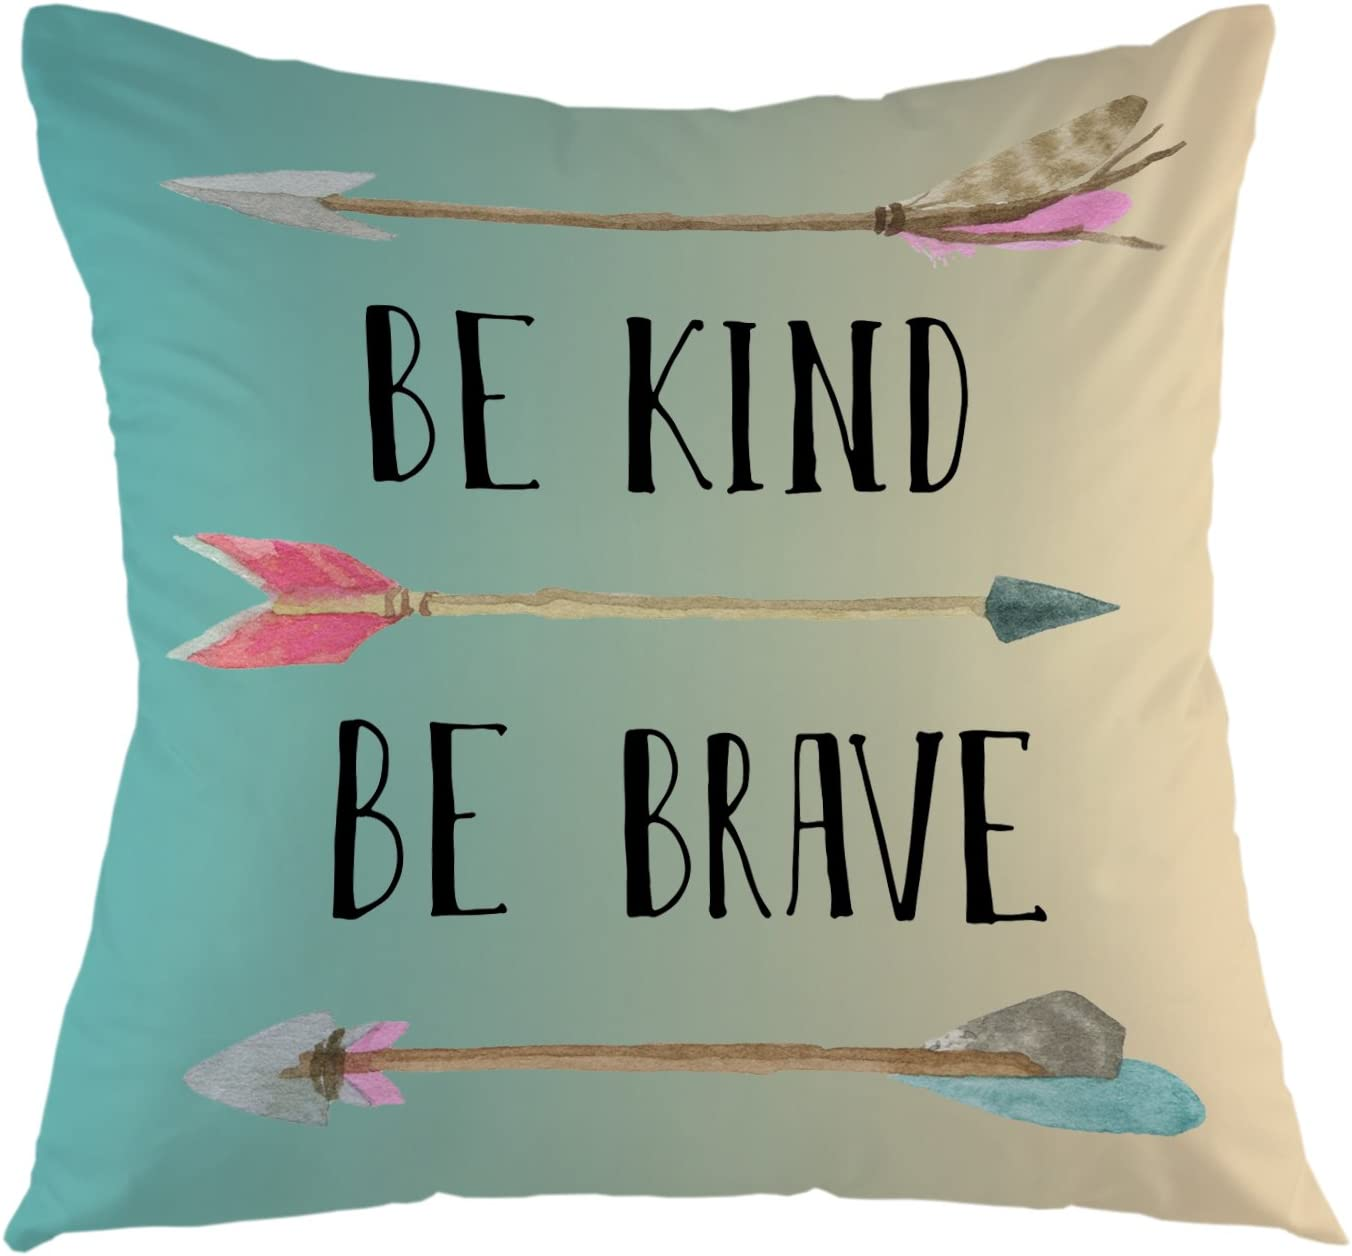 "oFloral Decorative Throw Pillow Cover Be Kind Be Brave Inspirational Quote Arrow Pillow Case Watercolor Bohemian Square Cushion Cover for Sofa Couch Home Car Bedroom Decoration 18"" x 18"" Turquoise"